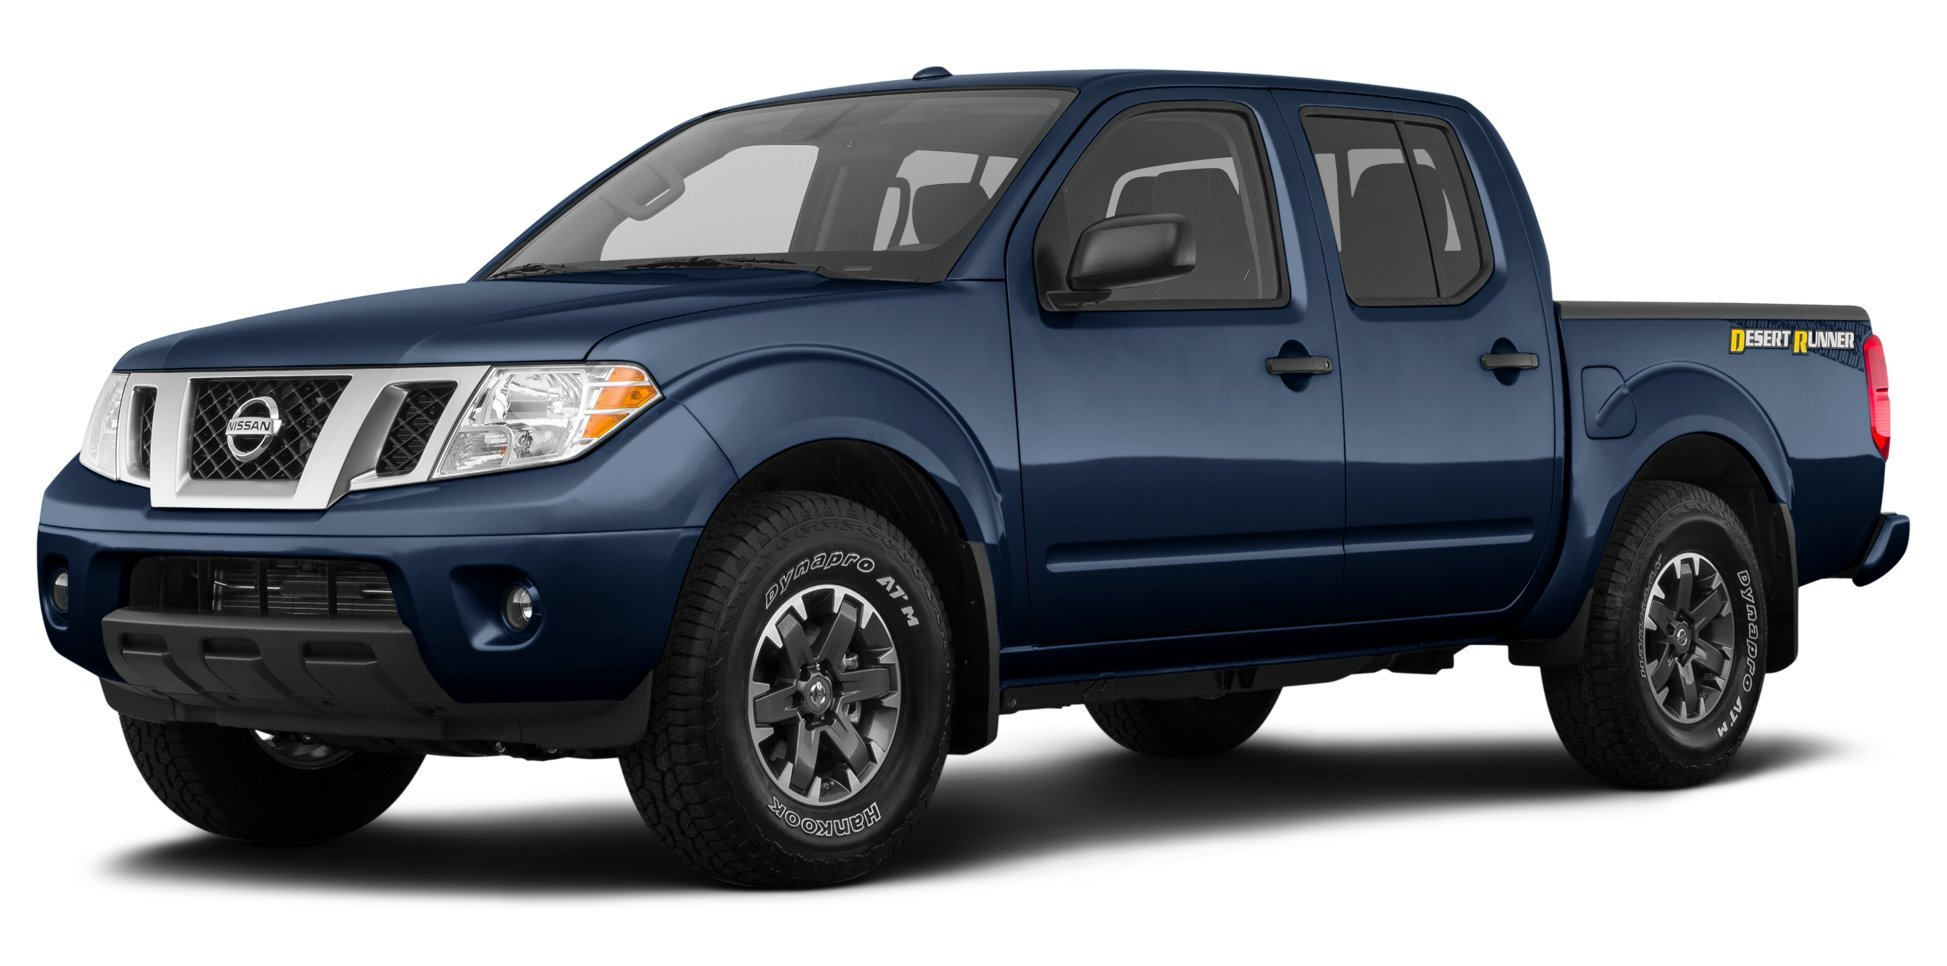 2018 nissan frontier reviews images and. Black Bedroom Furniture Sets. Home Design Ideas